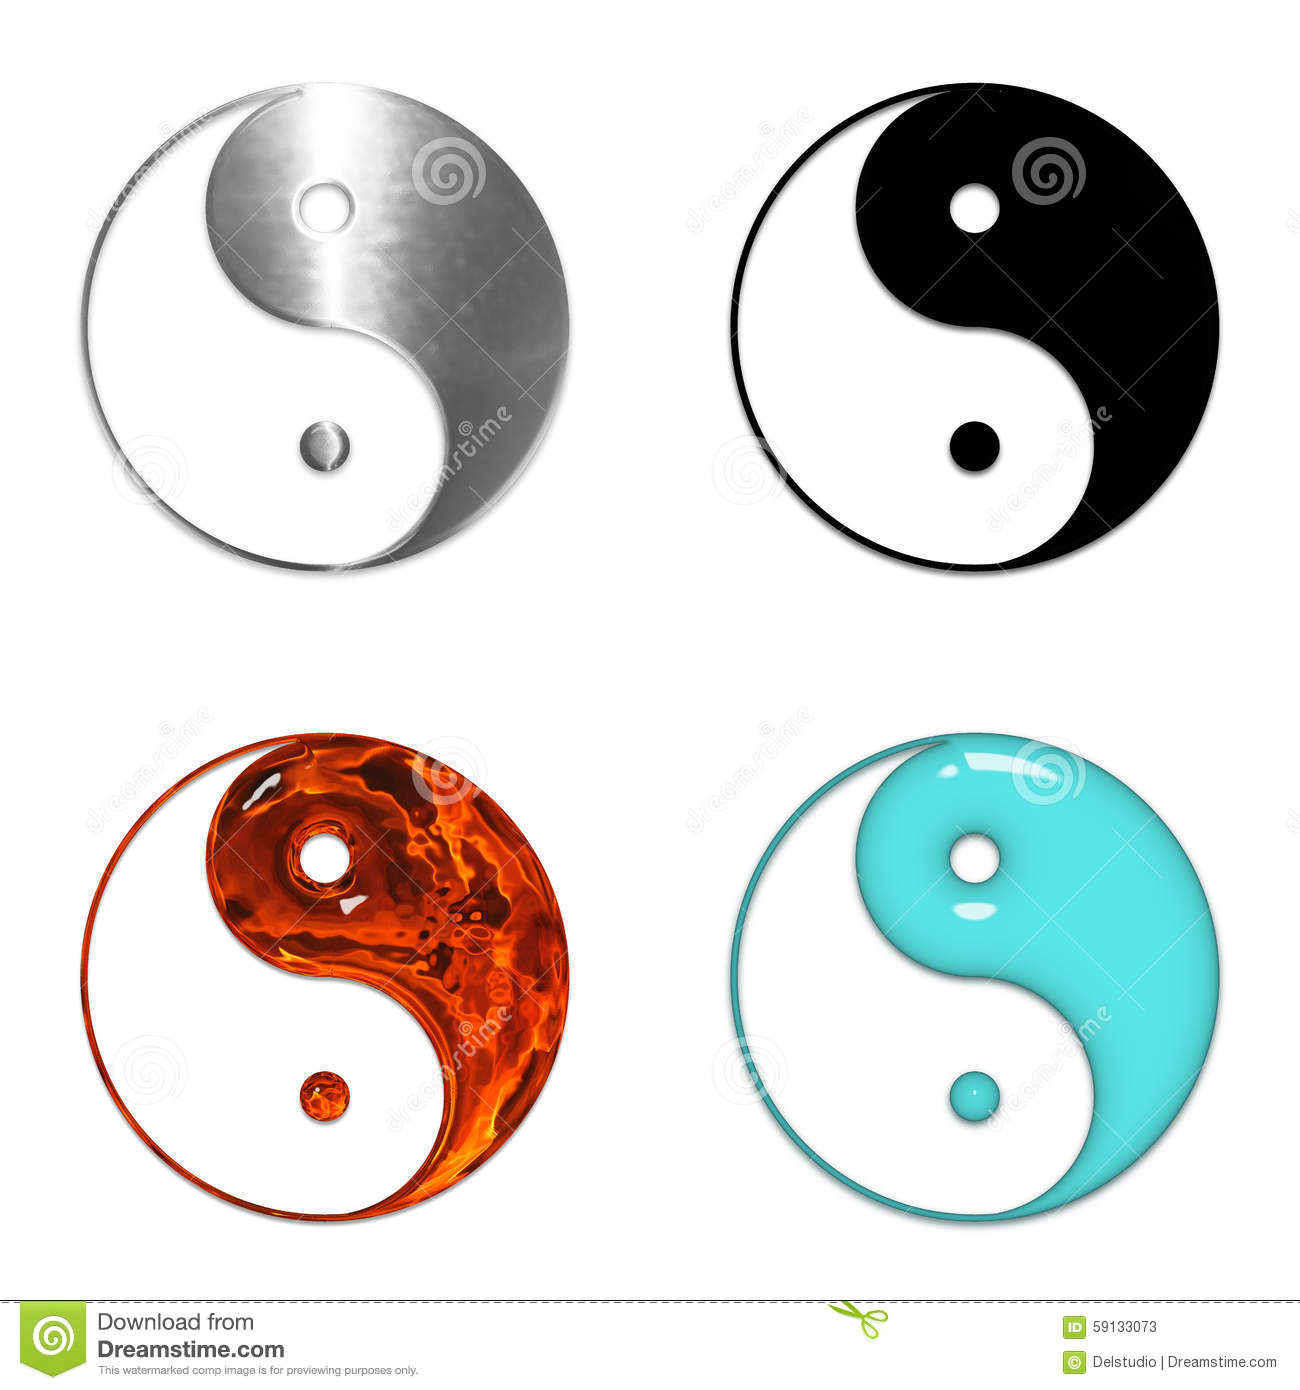 Yin yang male female symbols stock images 5 photos biocorpaavc